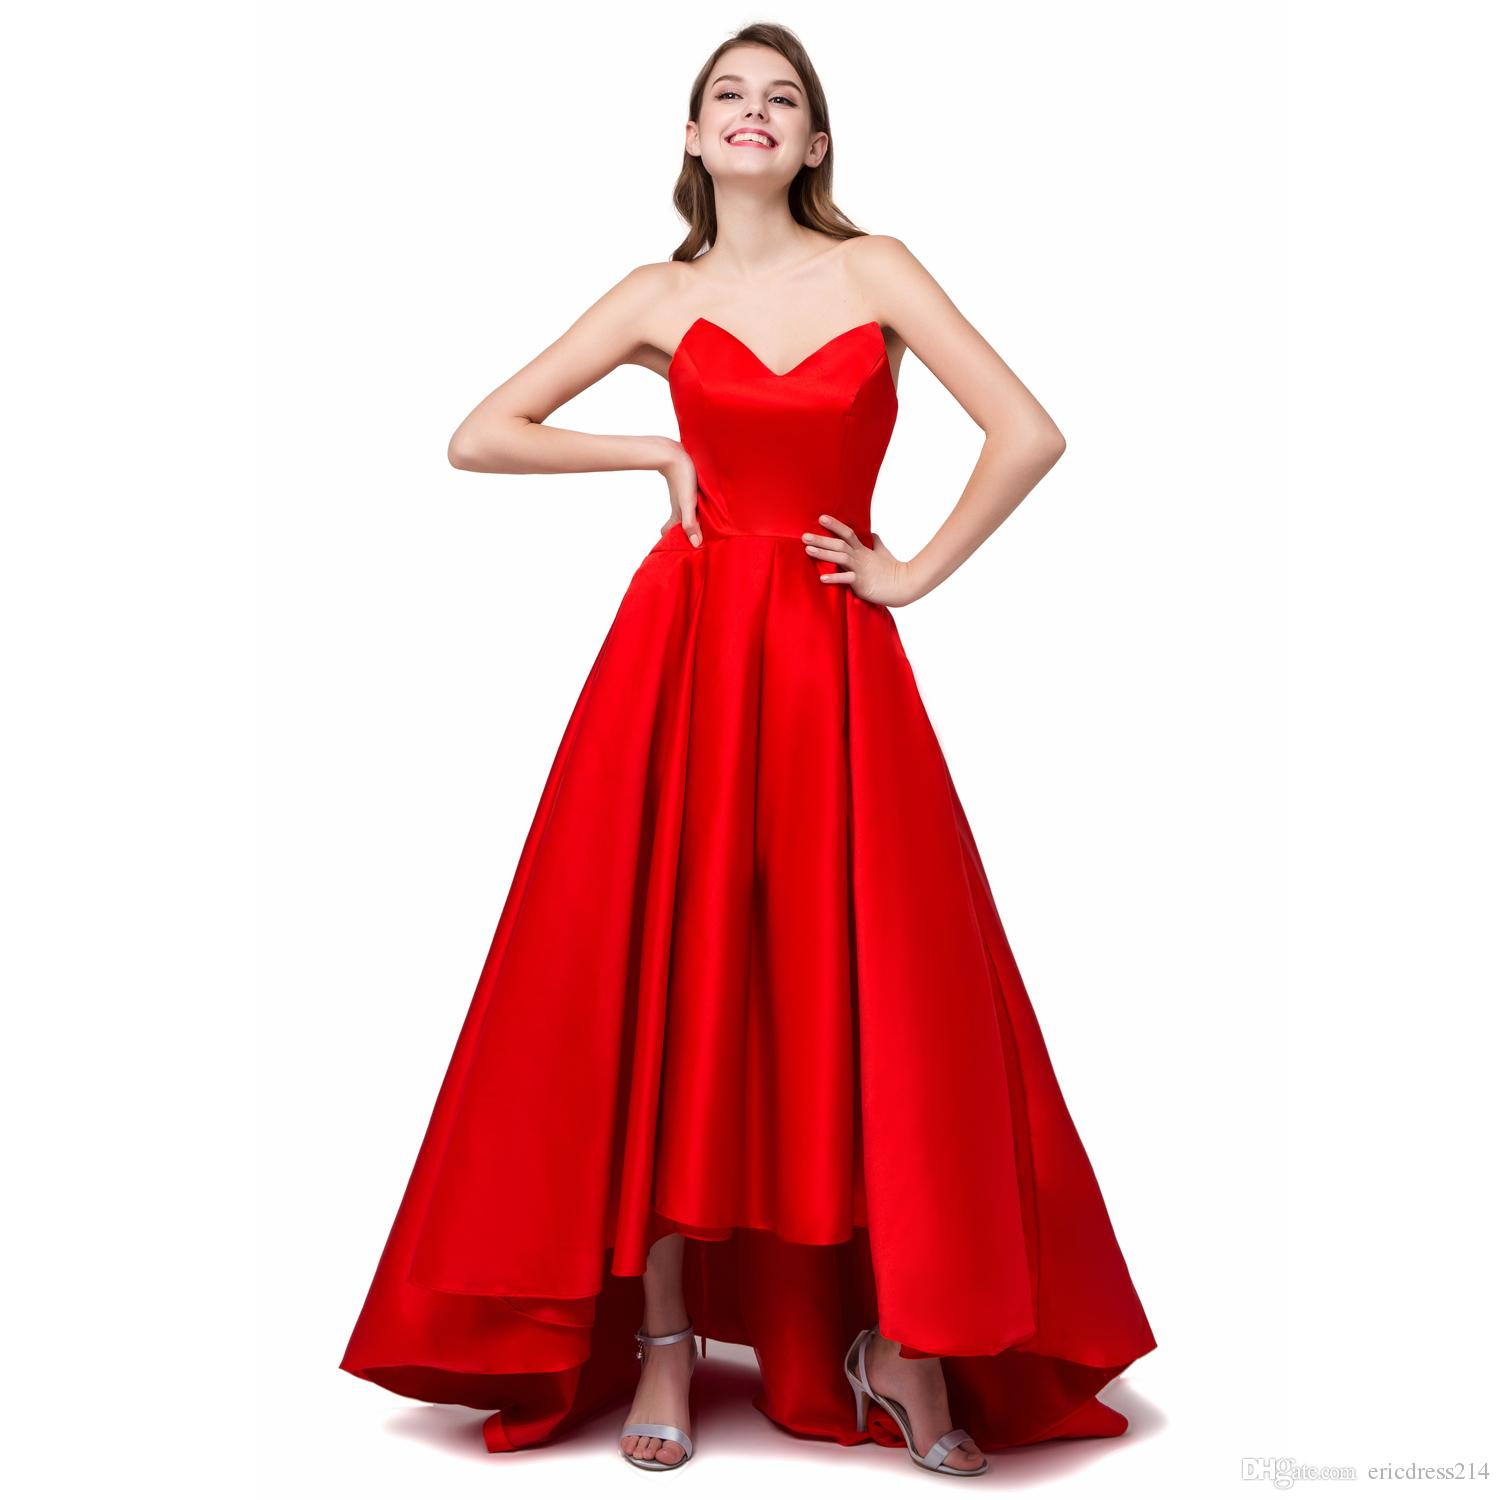 2017 new cheap formal high low bridesmaid dresses satin v neck a 2017 new cheap formal high low bridesmaid dresses satin v neck a line party gowns wedding prom dresses stock size 6 8 10 12 14 16 high low bridesmaid ombrellifo Gallery